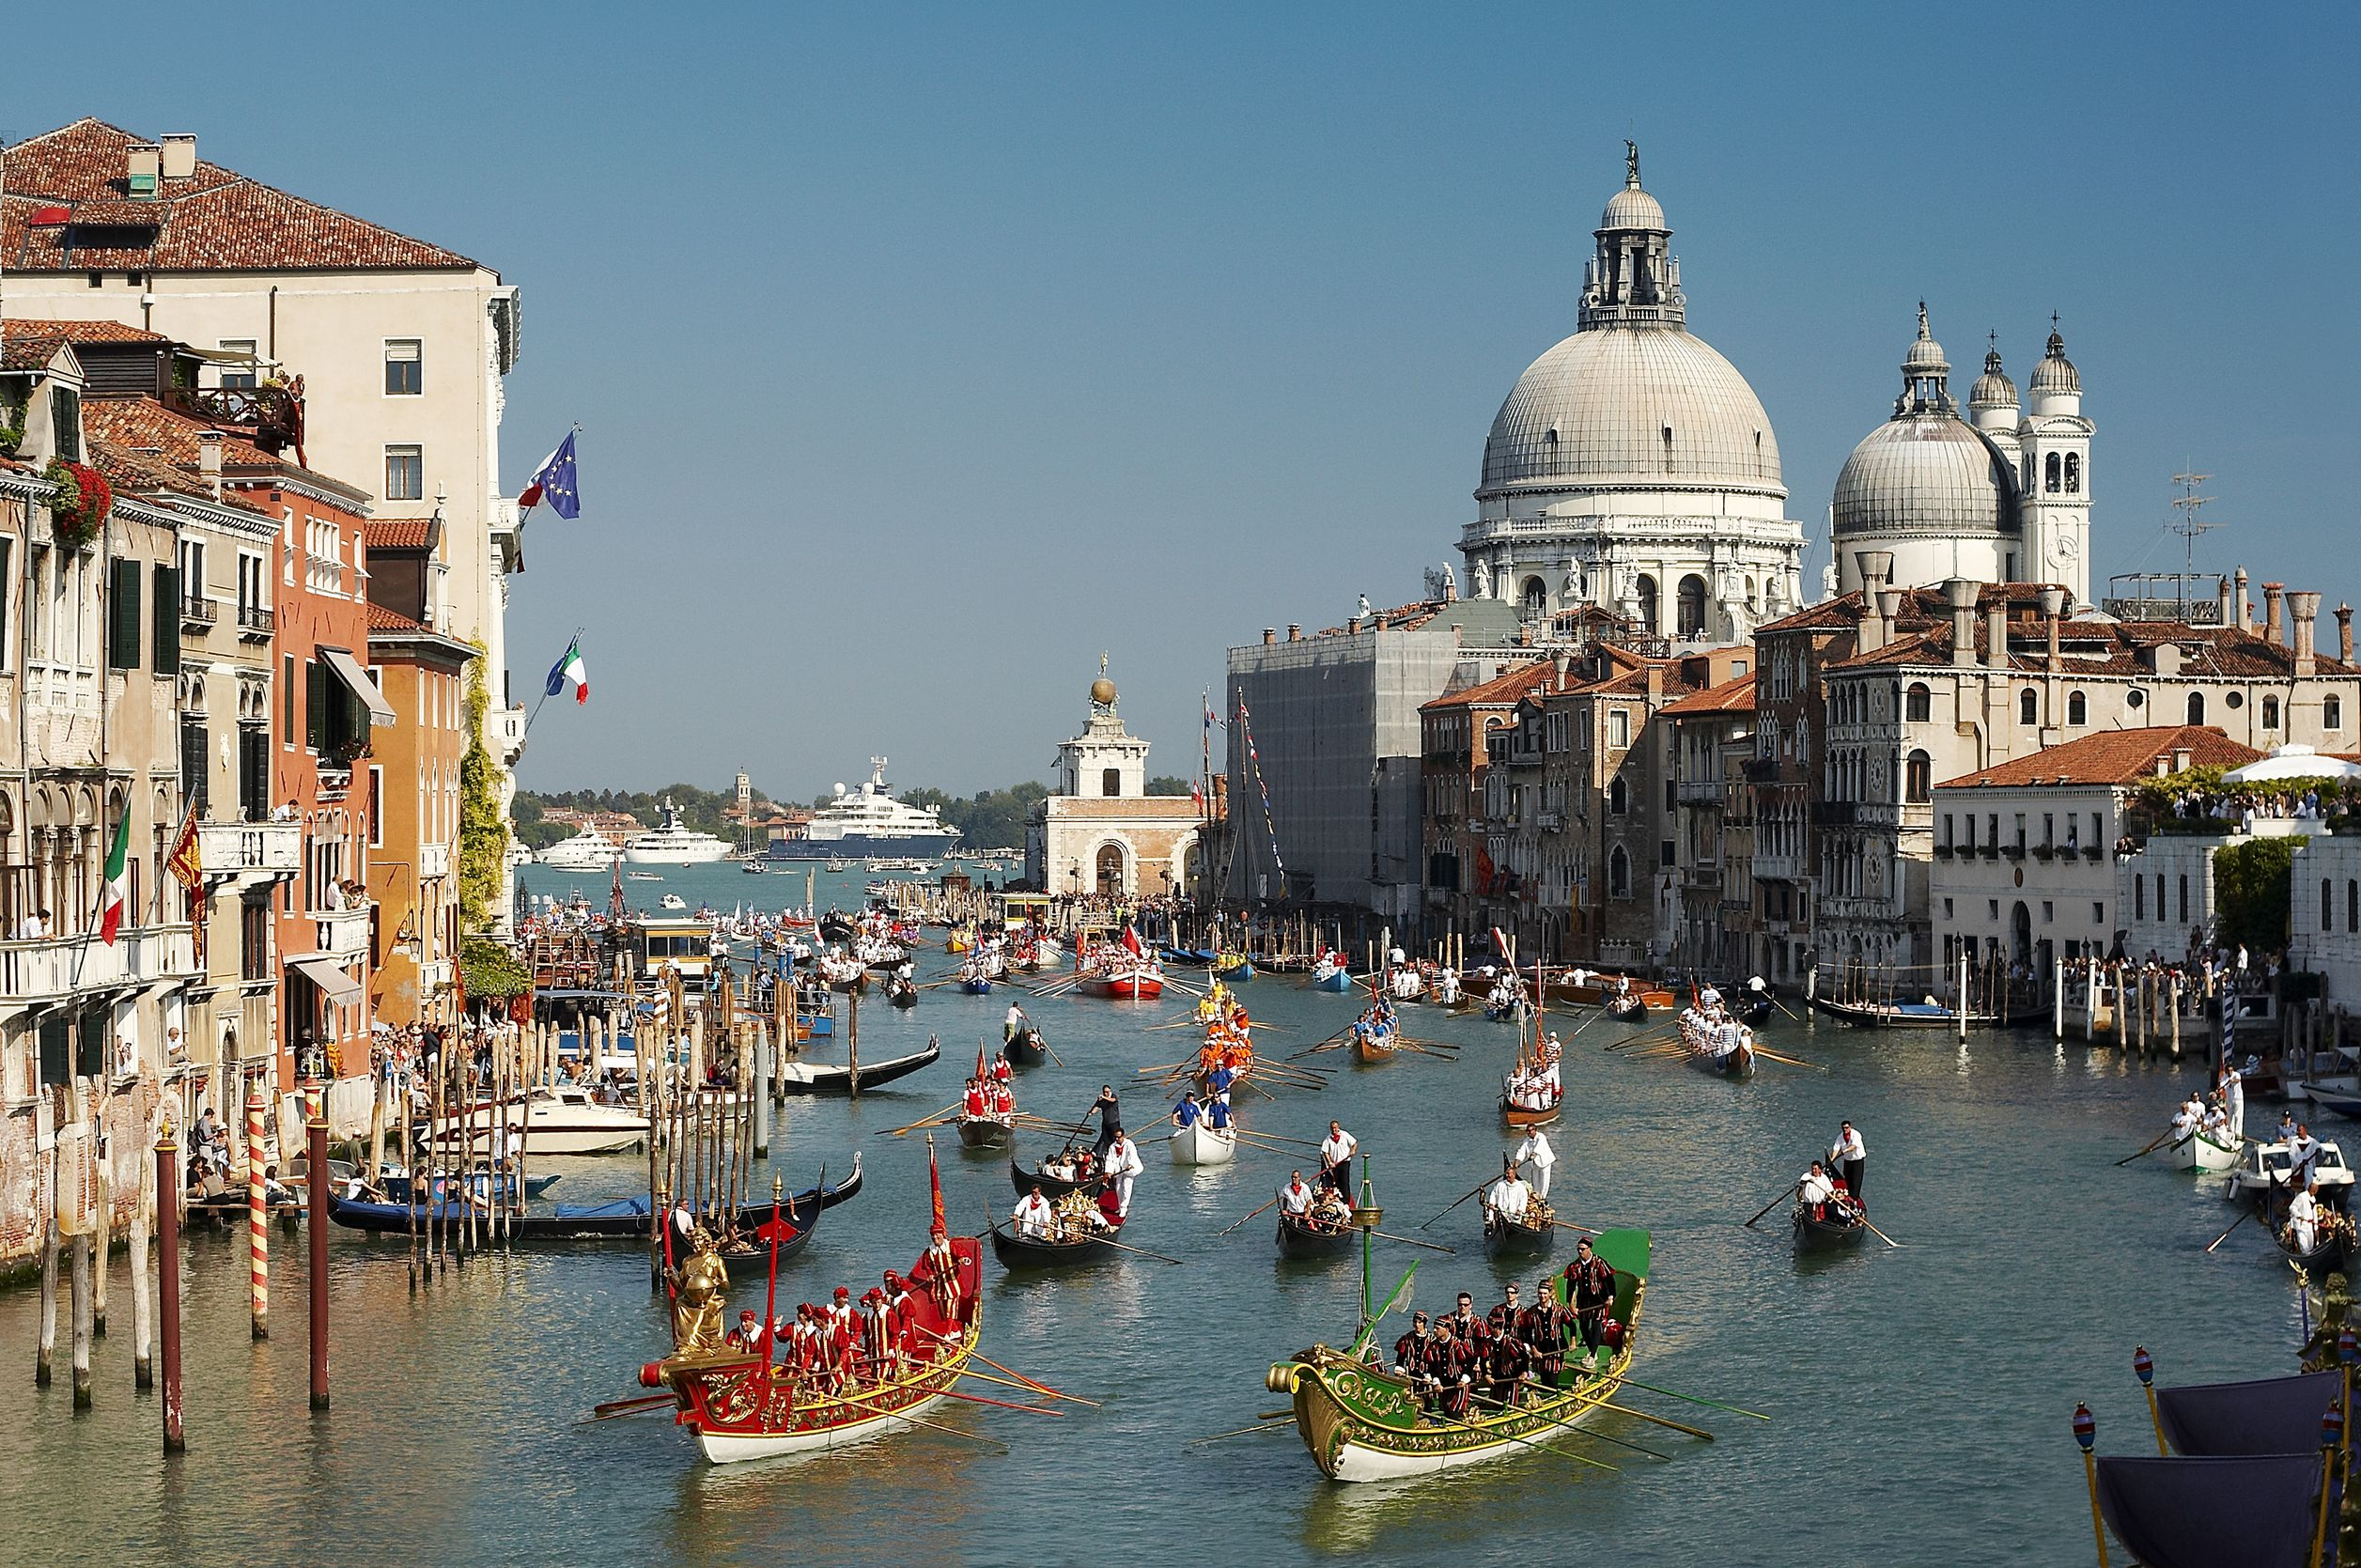 Venice Italy  city photos gallery : ... Veneta & Regata Storica – Venice, Italy | World Festival Directory